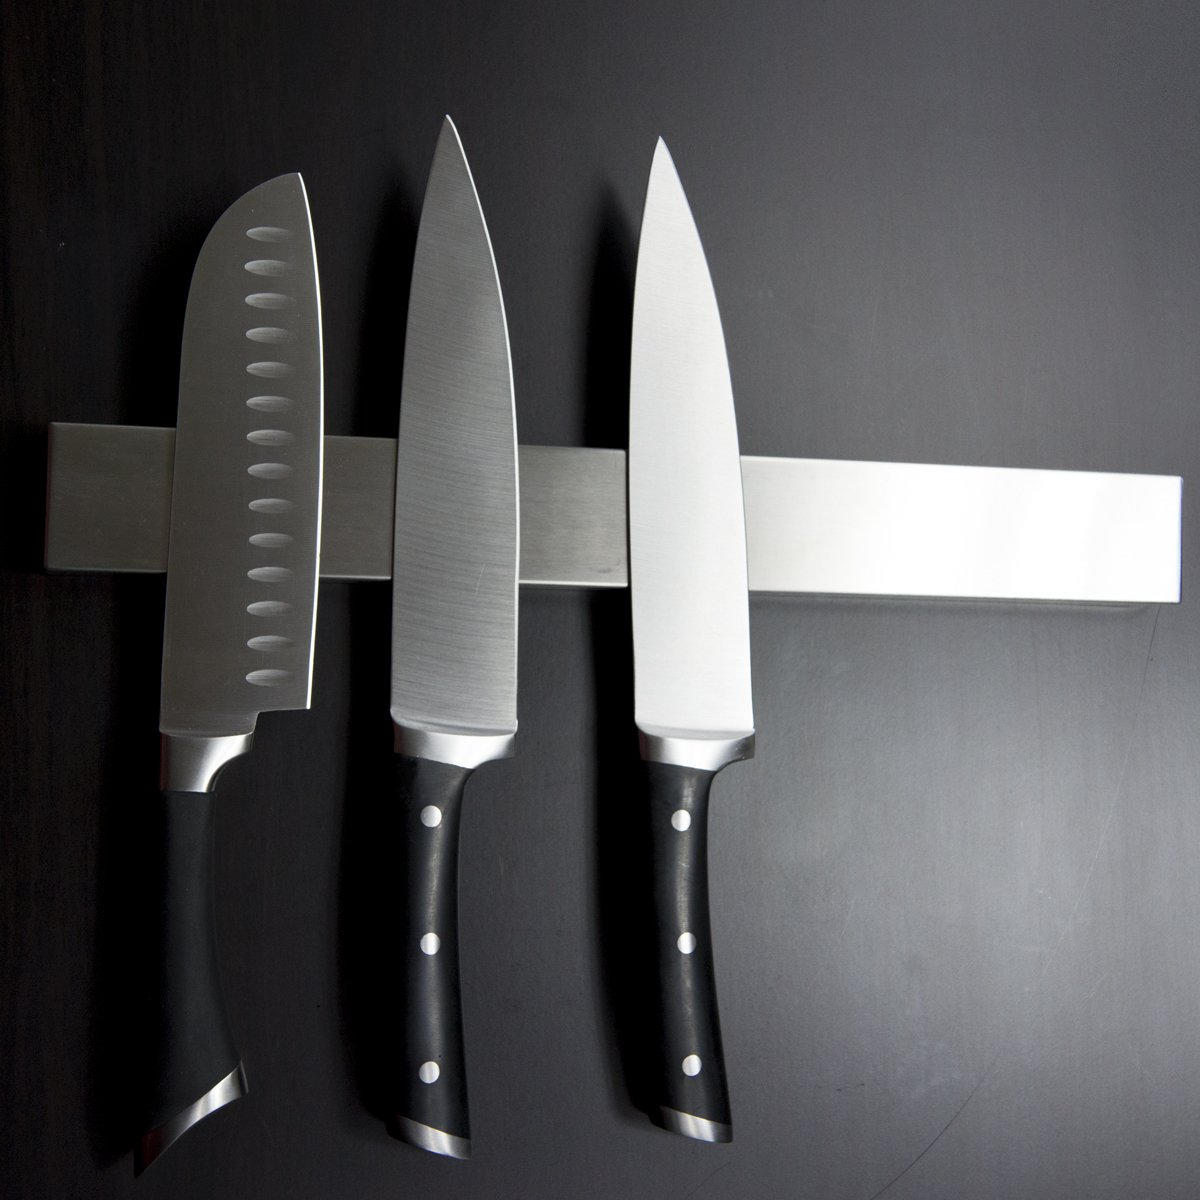 +Hot+ 16 Inch Stainless Steel Magnetic Knife Holder Magnetic Knife Strip, Magnetic Knife Bar Stainless Steel Easy to Install by Misc Home